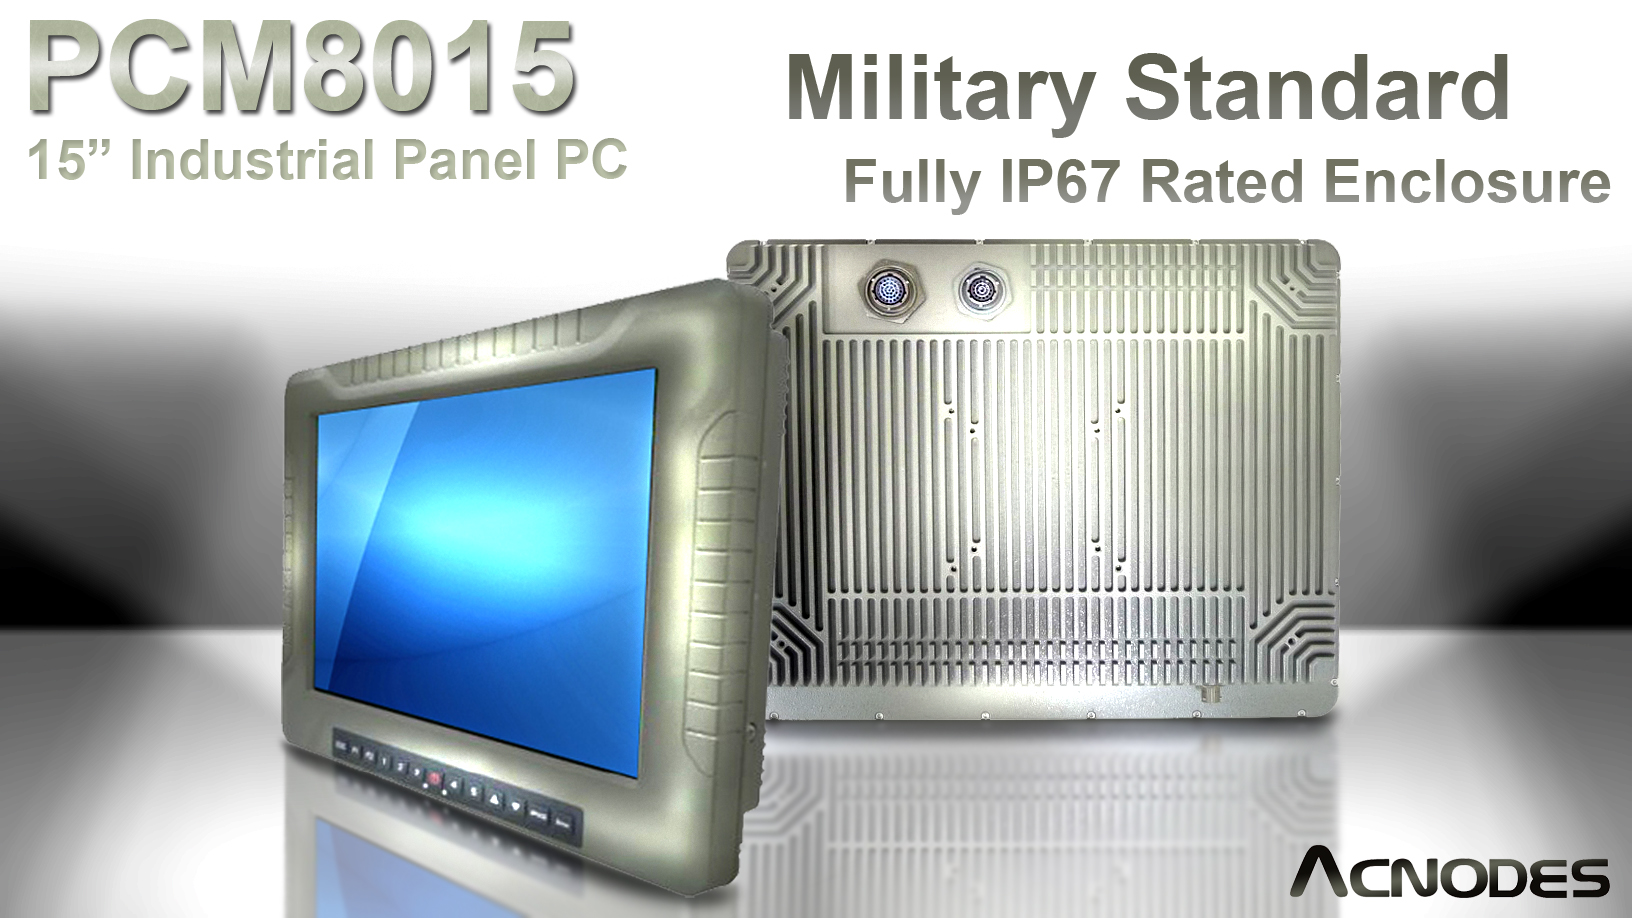 Acnodes New Industrial Panel Pc Features Fully Ip67 Rated